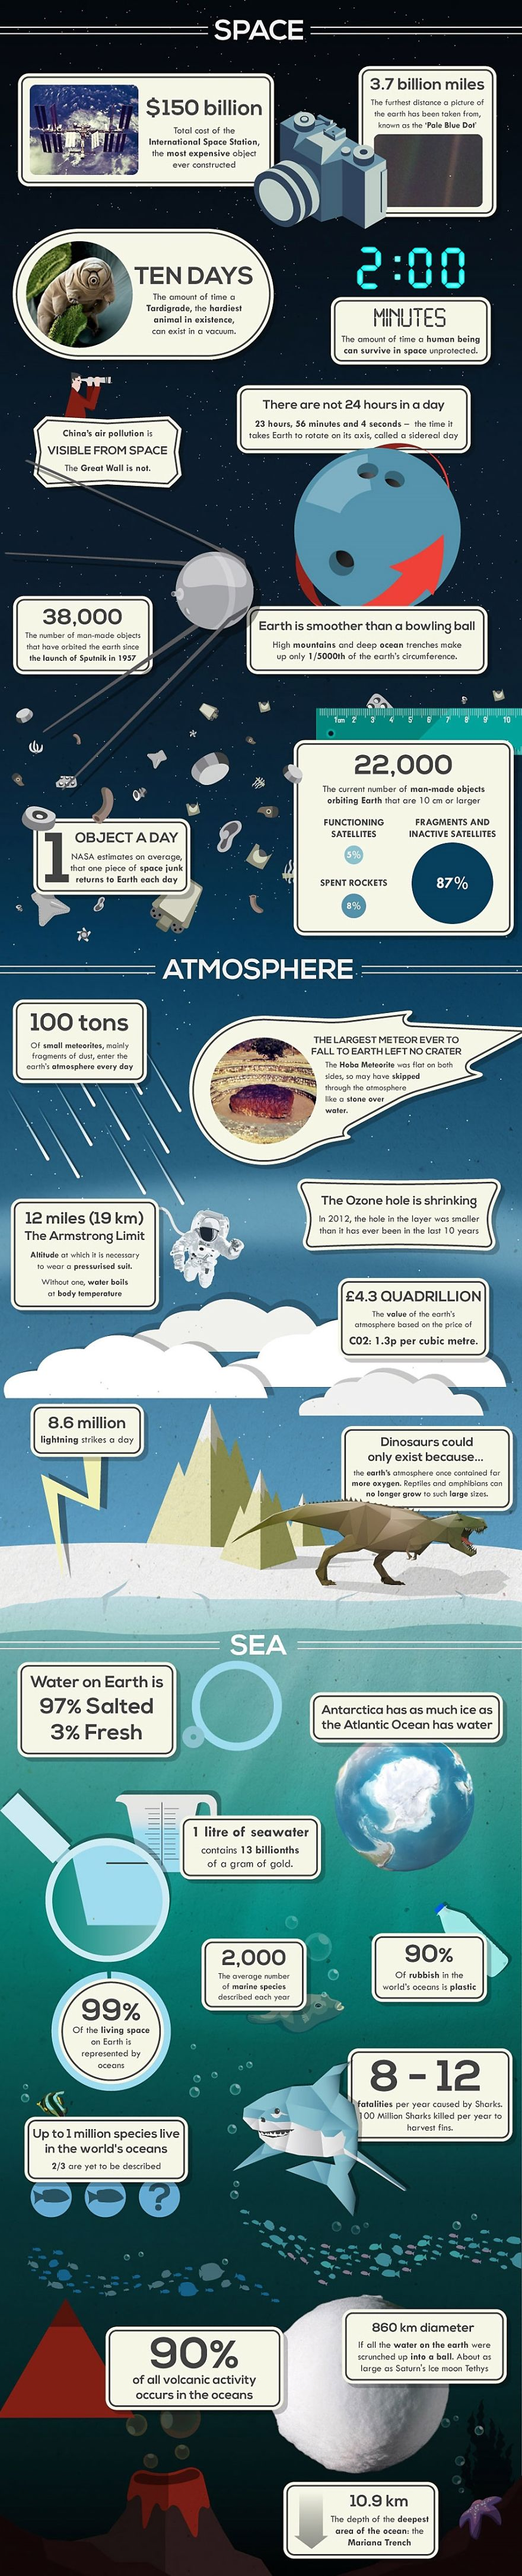 50 Surprising Facts About Planet Earth You've Probably Never Heard Before